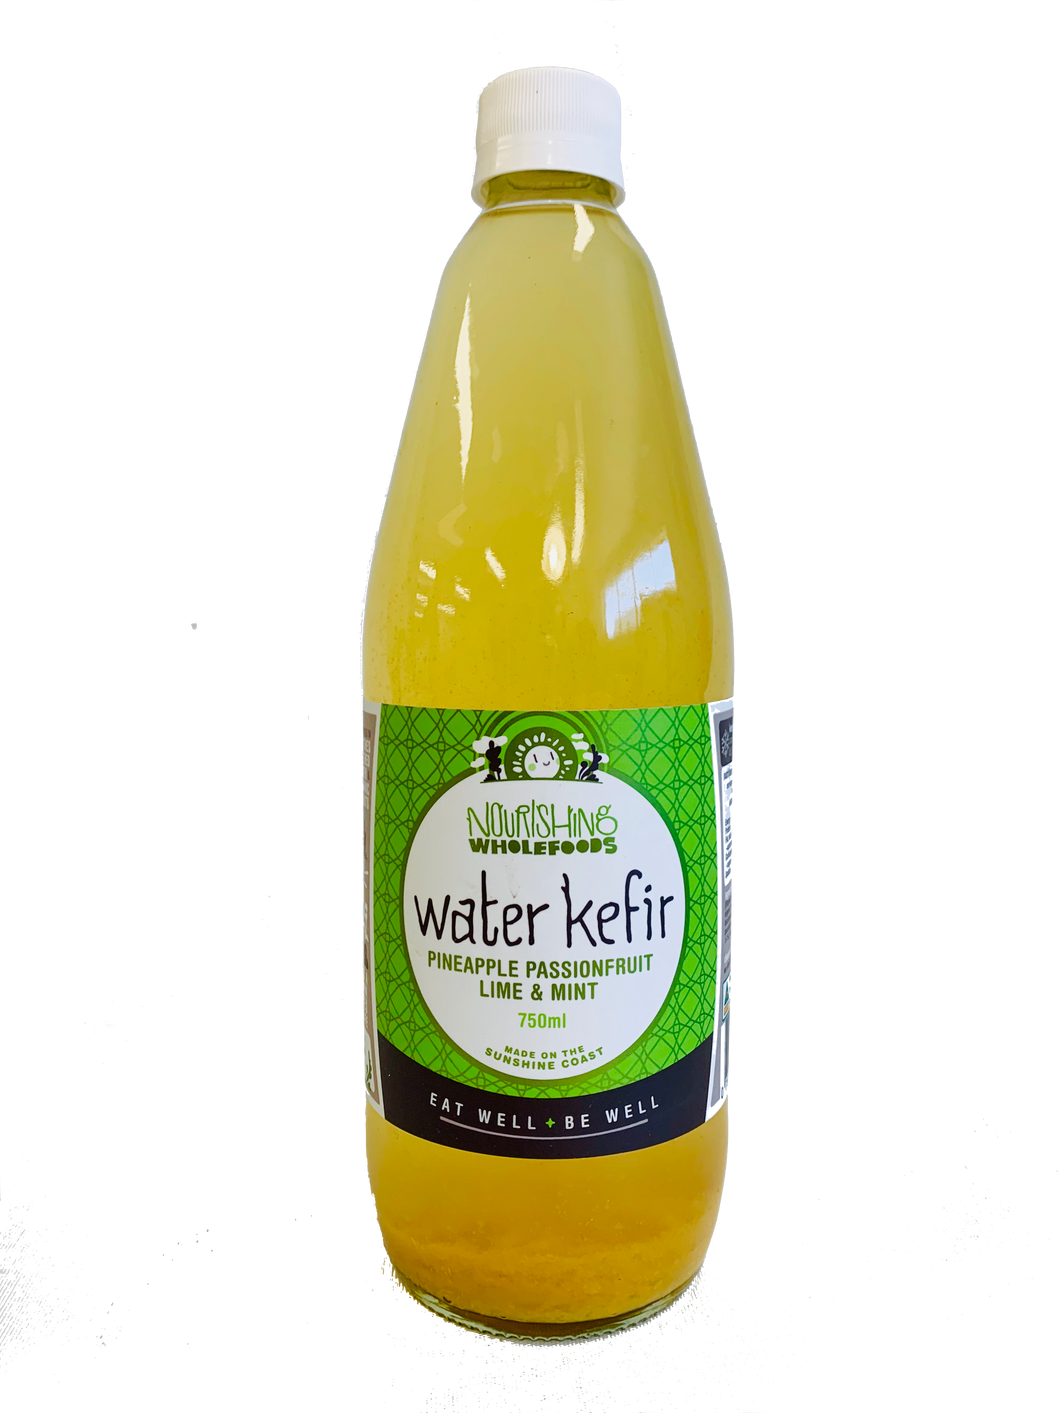 Kefir Pineapple, Passionfruit, lime & Mint 750ml